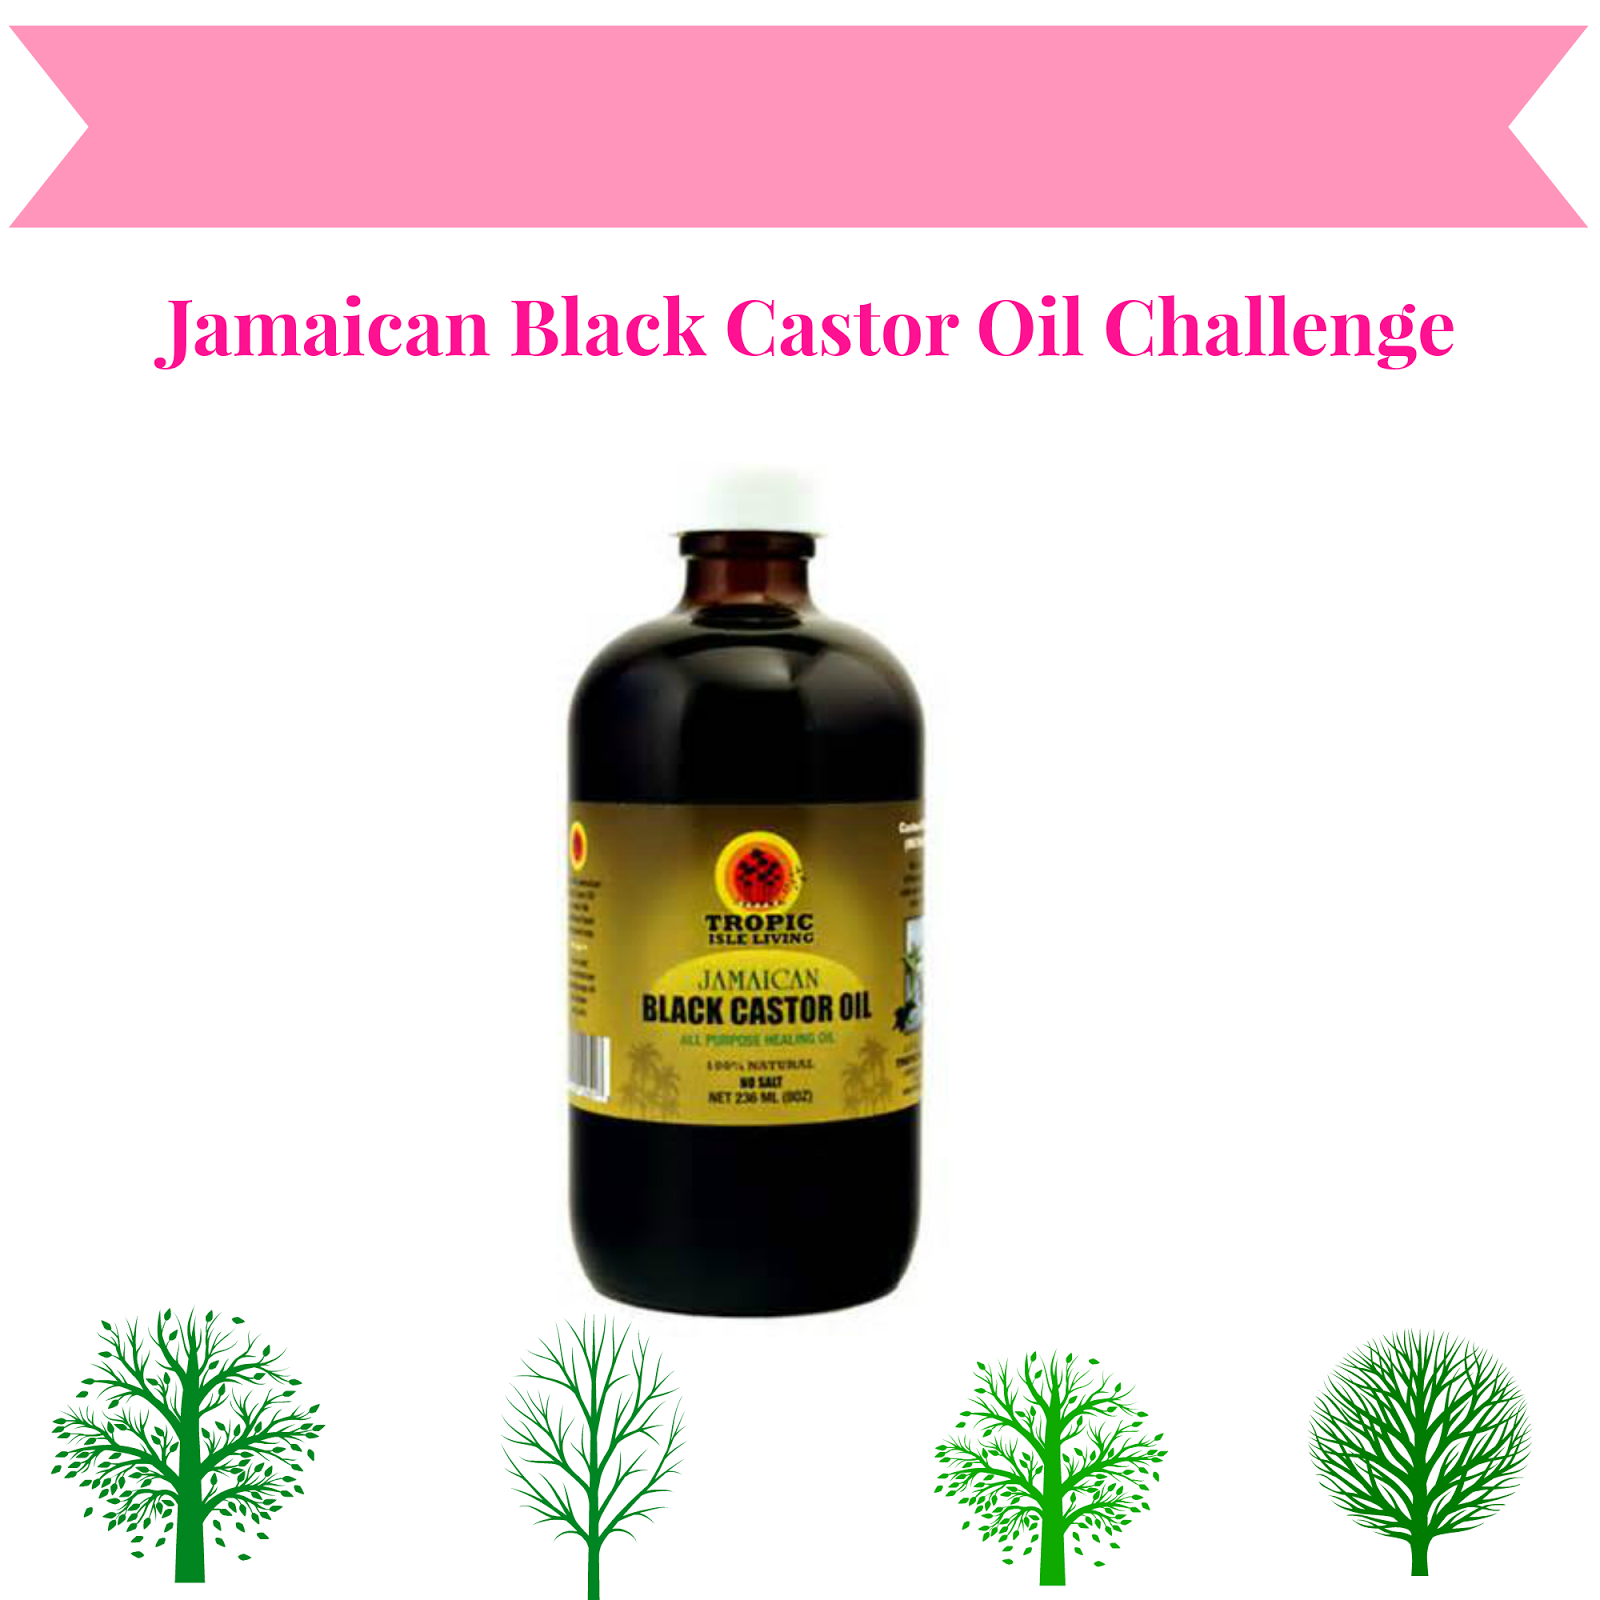 jamaican black castor oil challenge growing 4 inches of hair in 6 months beauty and lifestyle. Black Bedroom Furniture Sets. Home Design Ideas